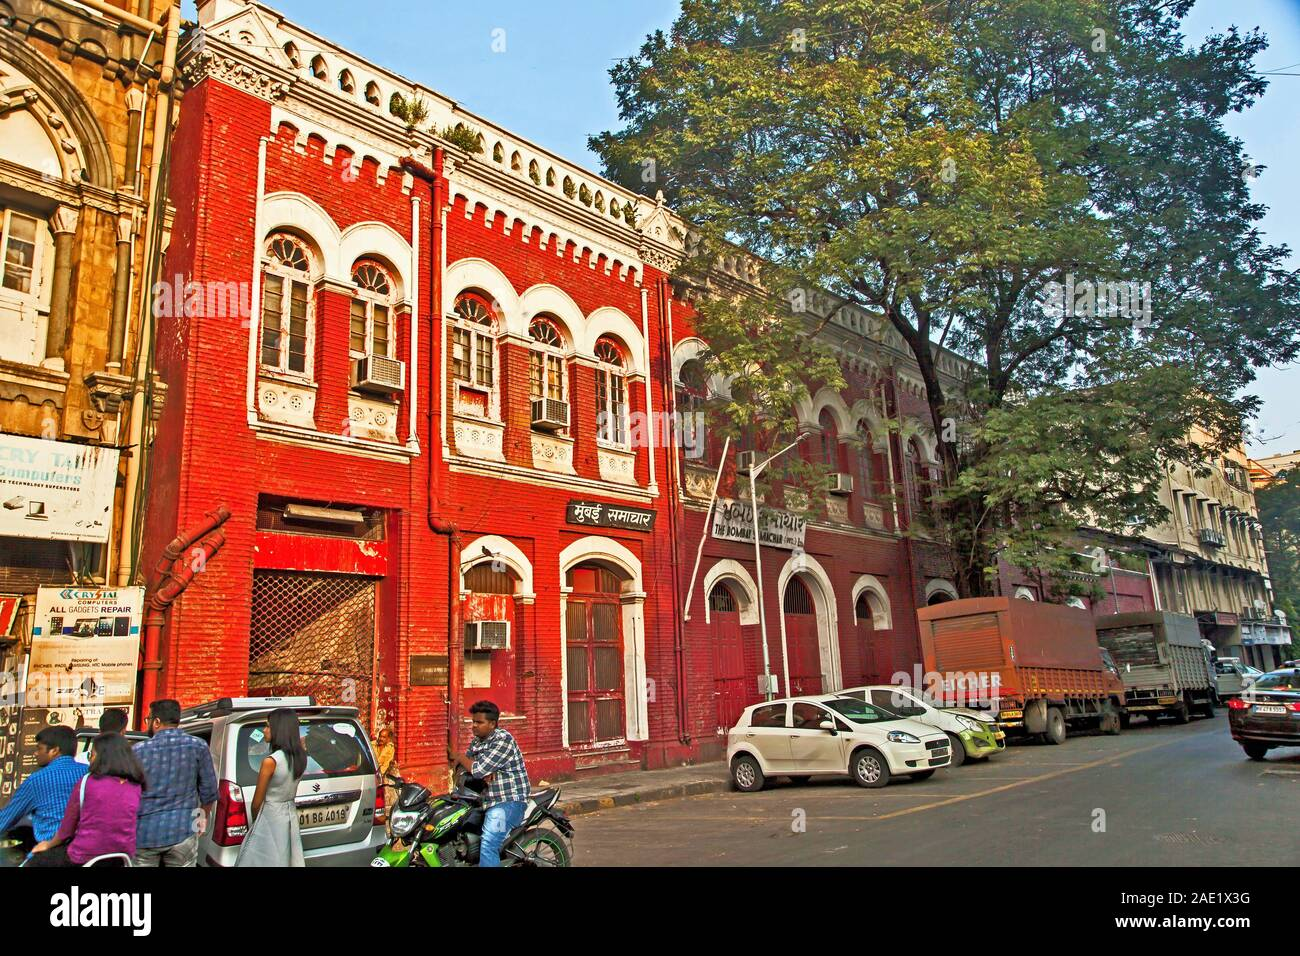 Bombay Samachar High Resolution Stock Photography and Images - Alamy